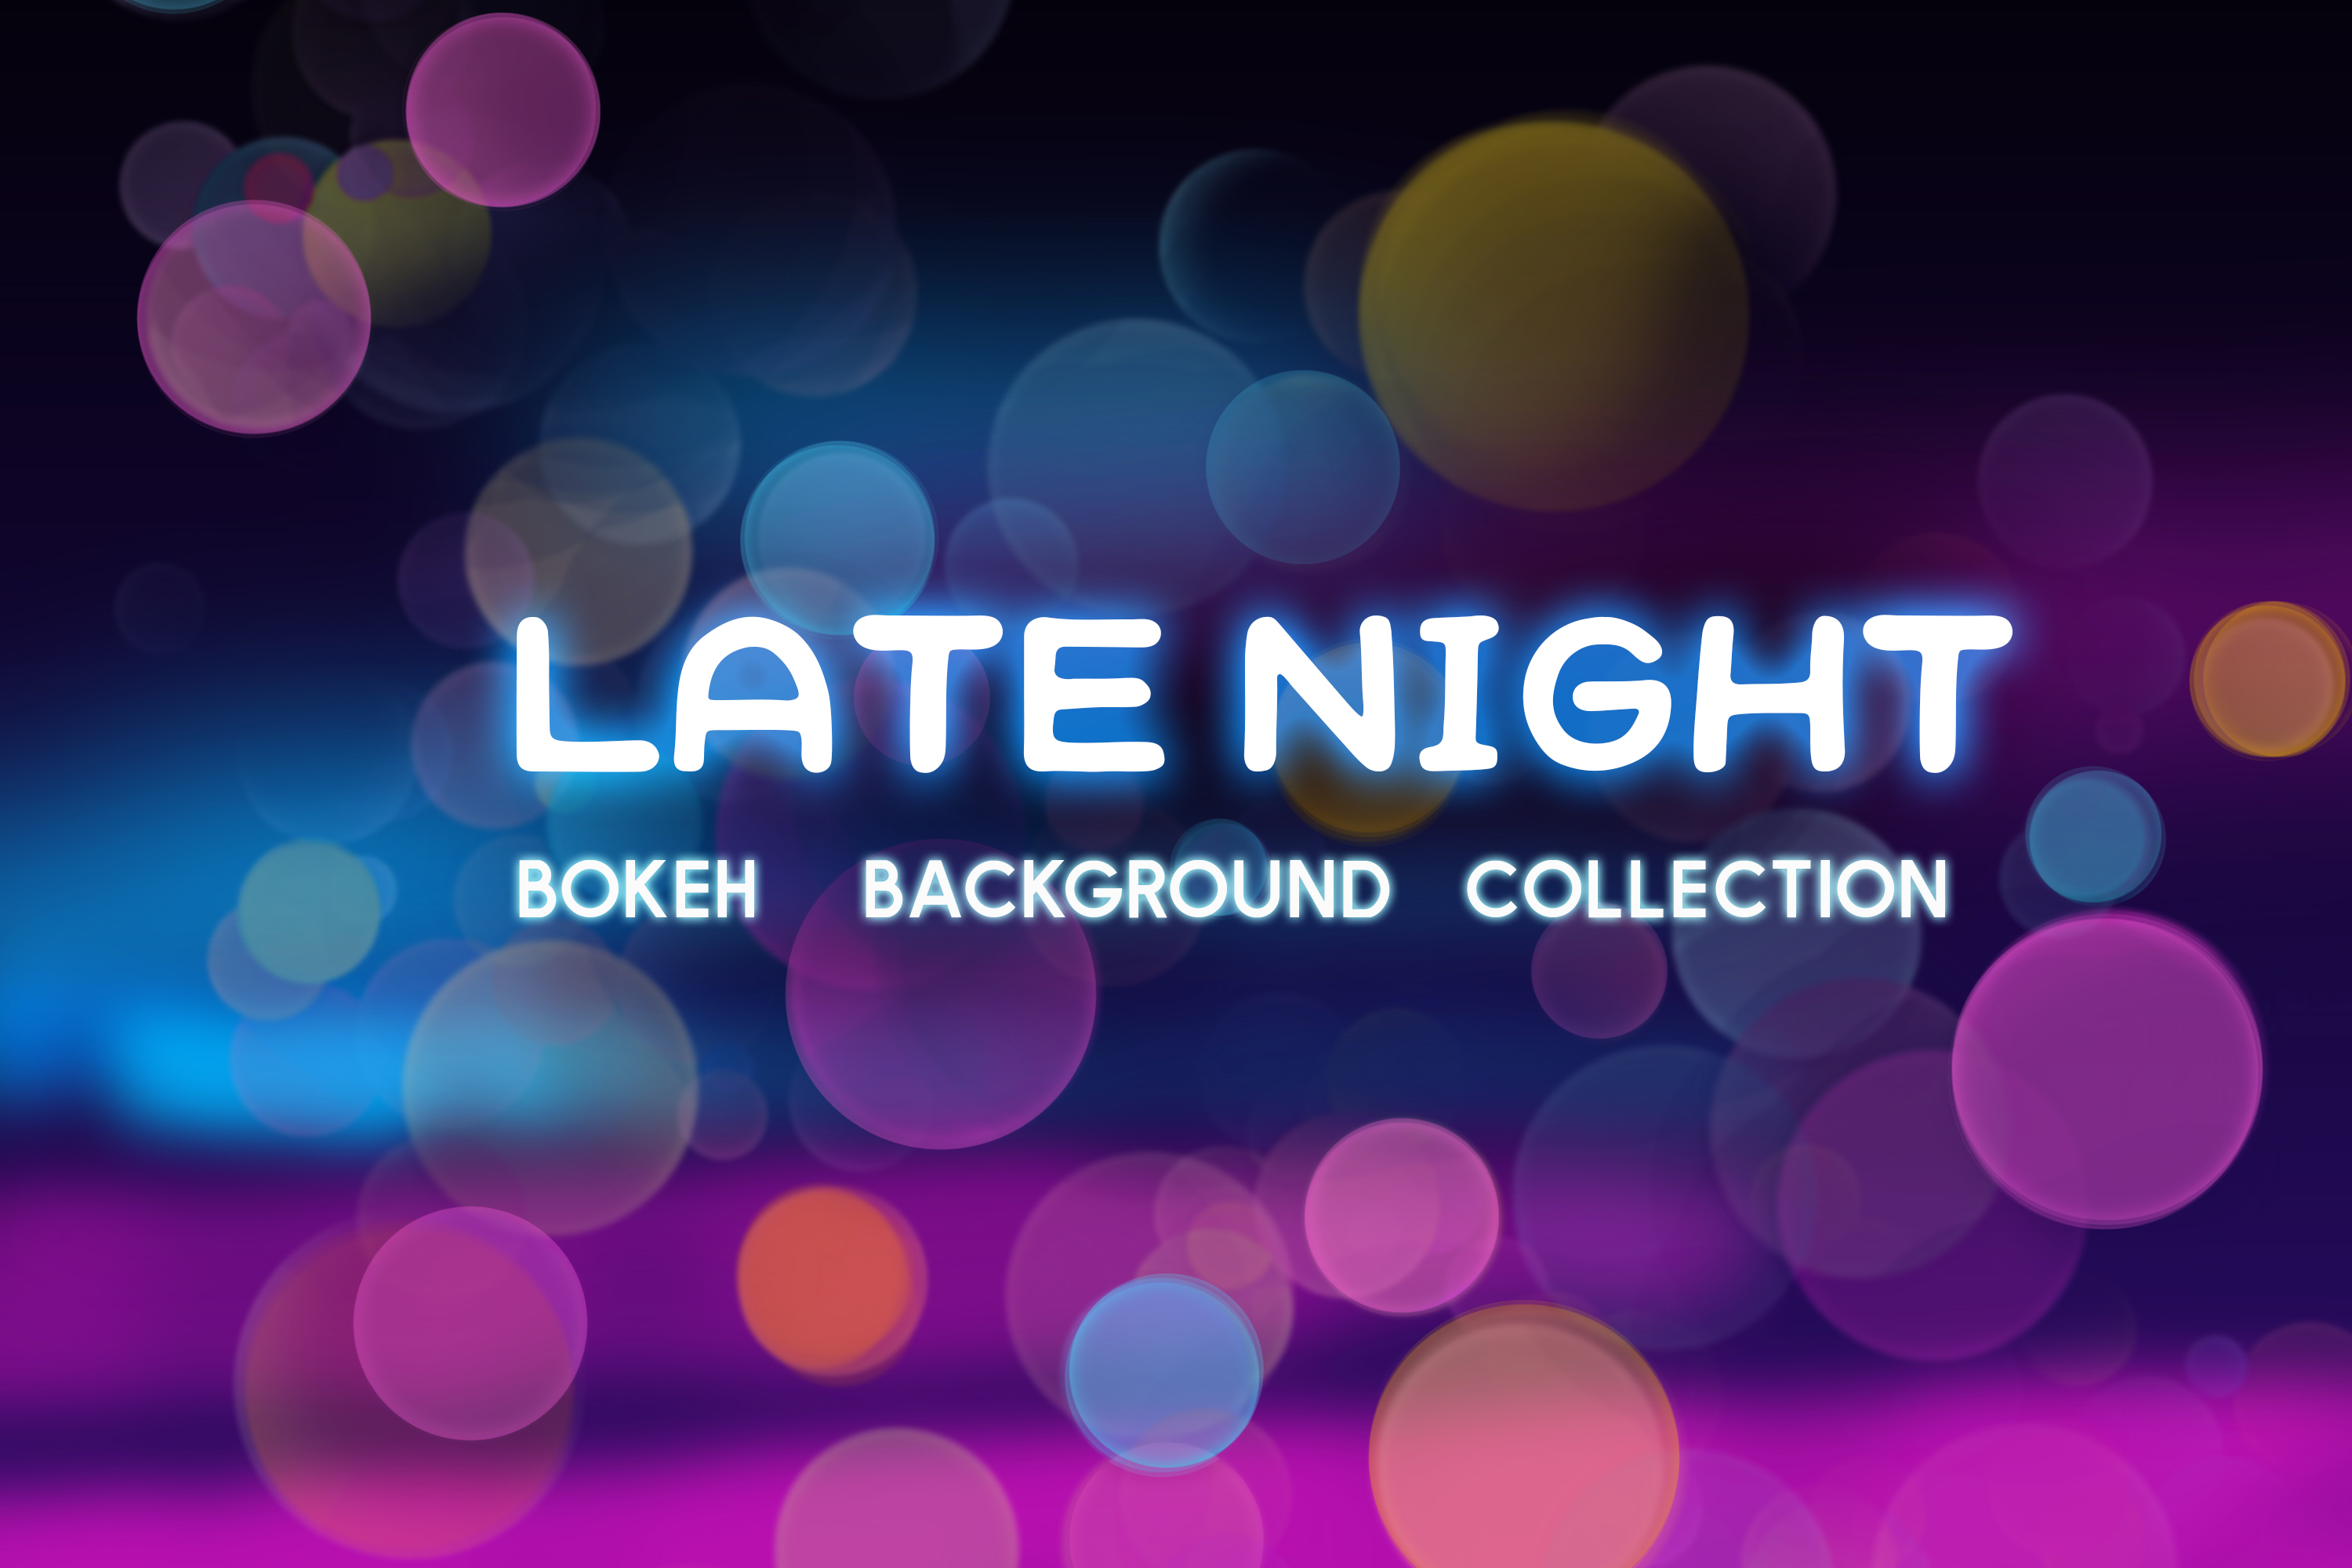 Download Free Late Night Bokeh Background Collection Graphic By Tatiana for Cricut Explore, Silhouette and other cutting machines.